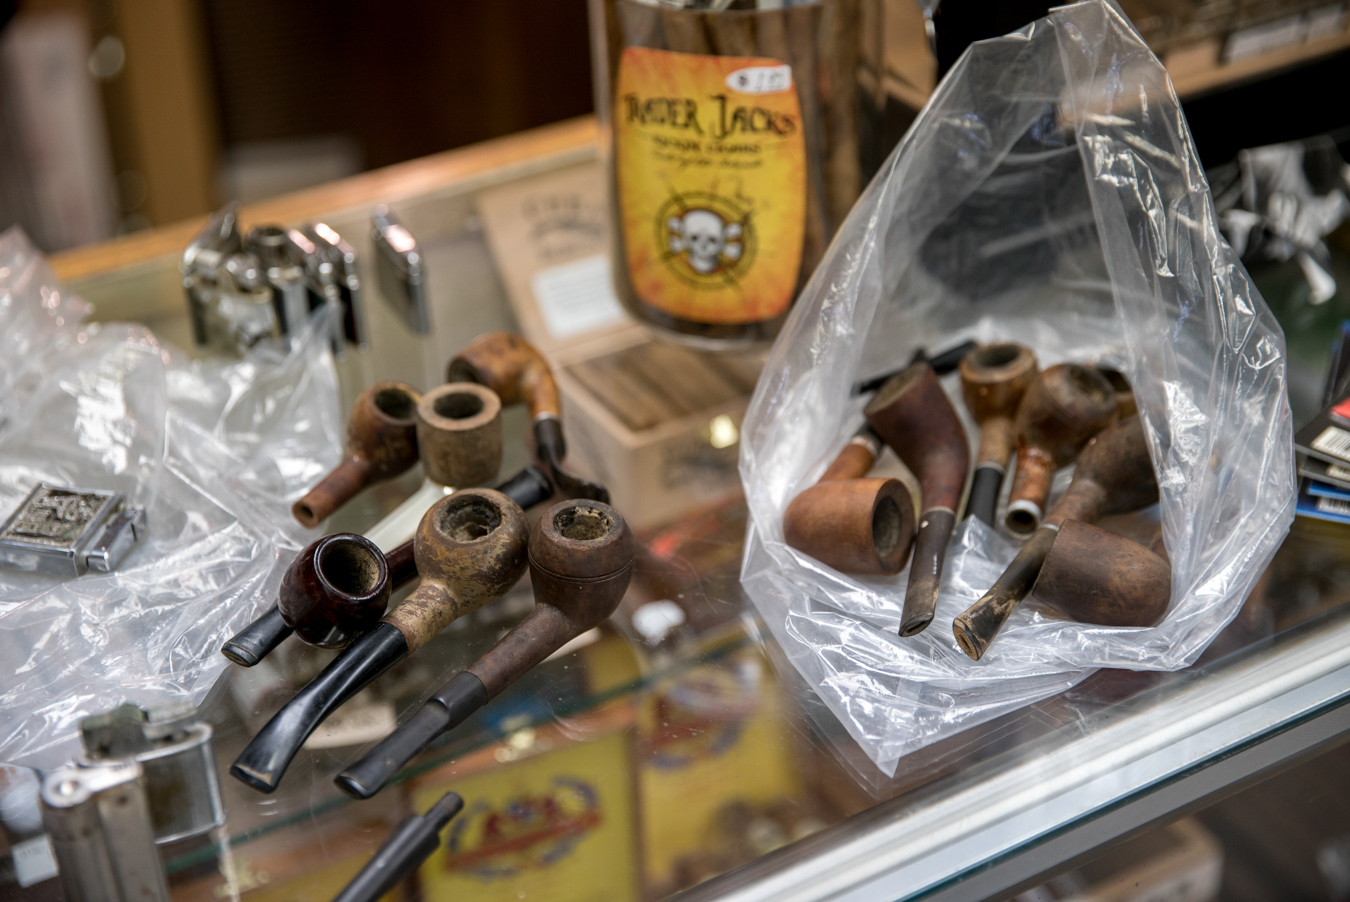 Antique pipes we purchased in Gillette